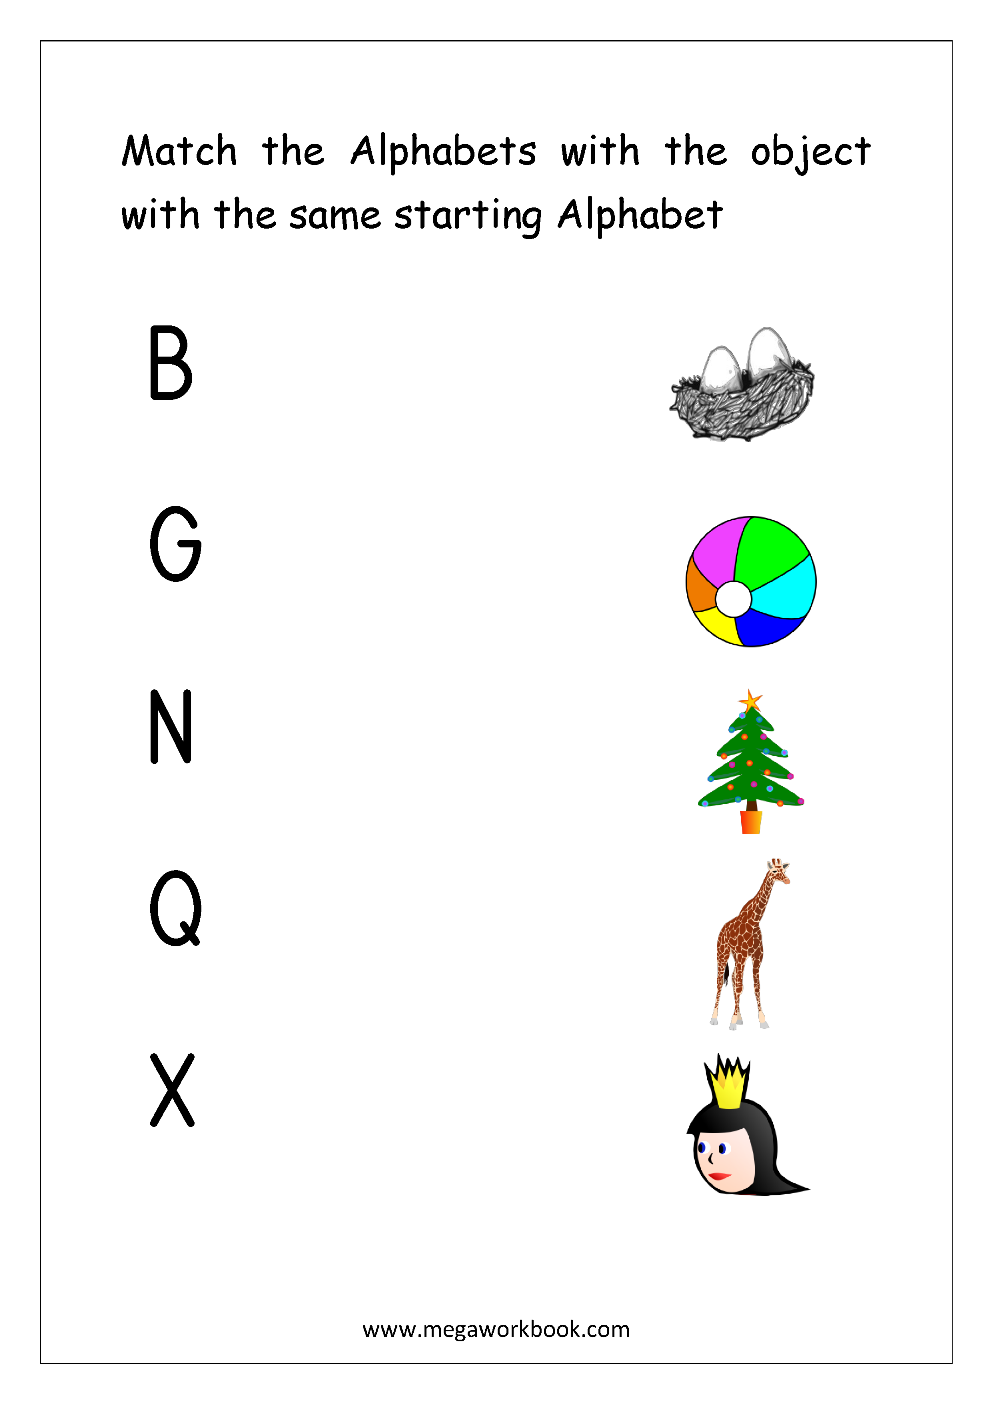 Free English Worksheets - Alphabet Matching - Megaworkbook inside Alphabet Matching Worksheets Pdf